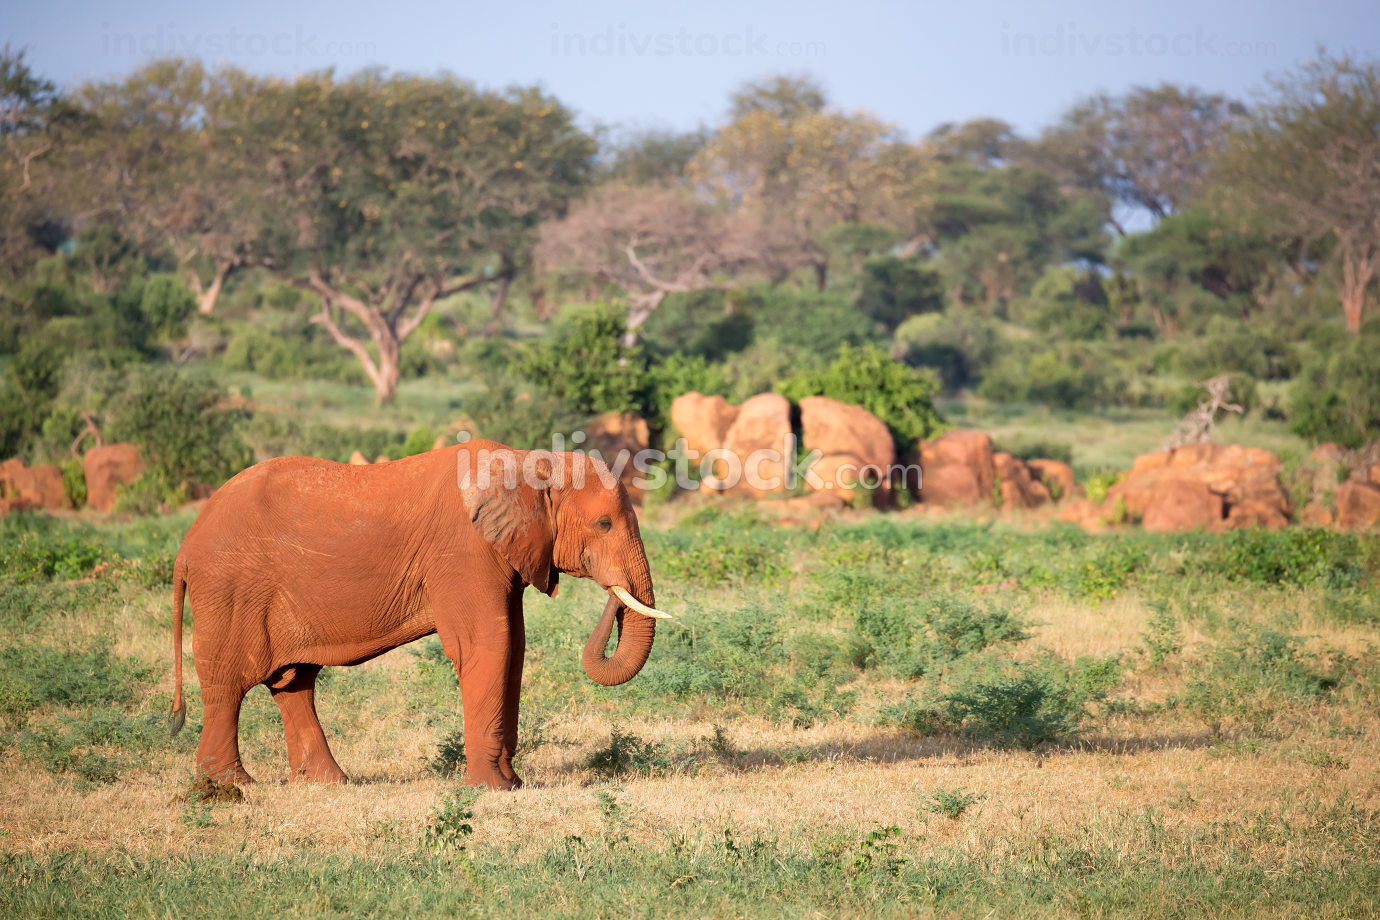 A big red elephant walks through the savannah between many plant